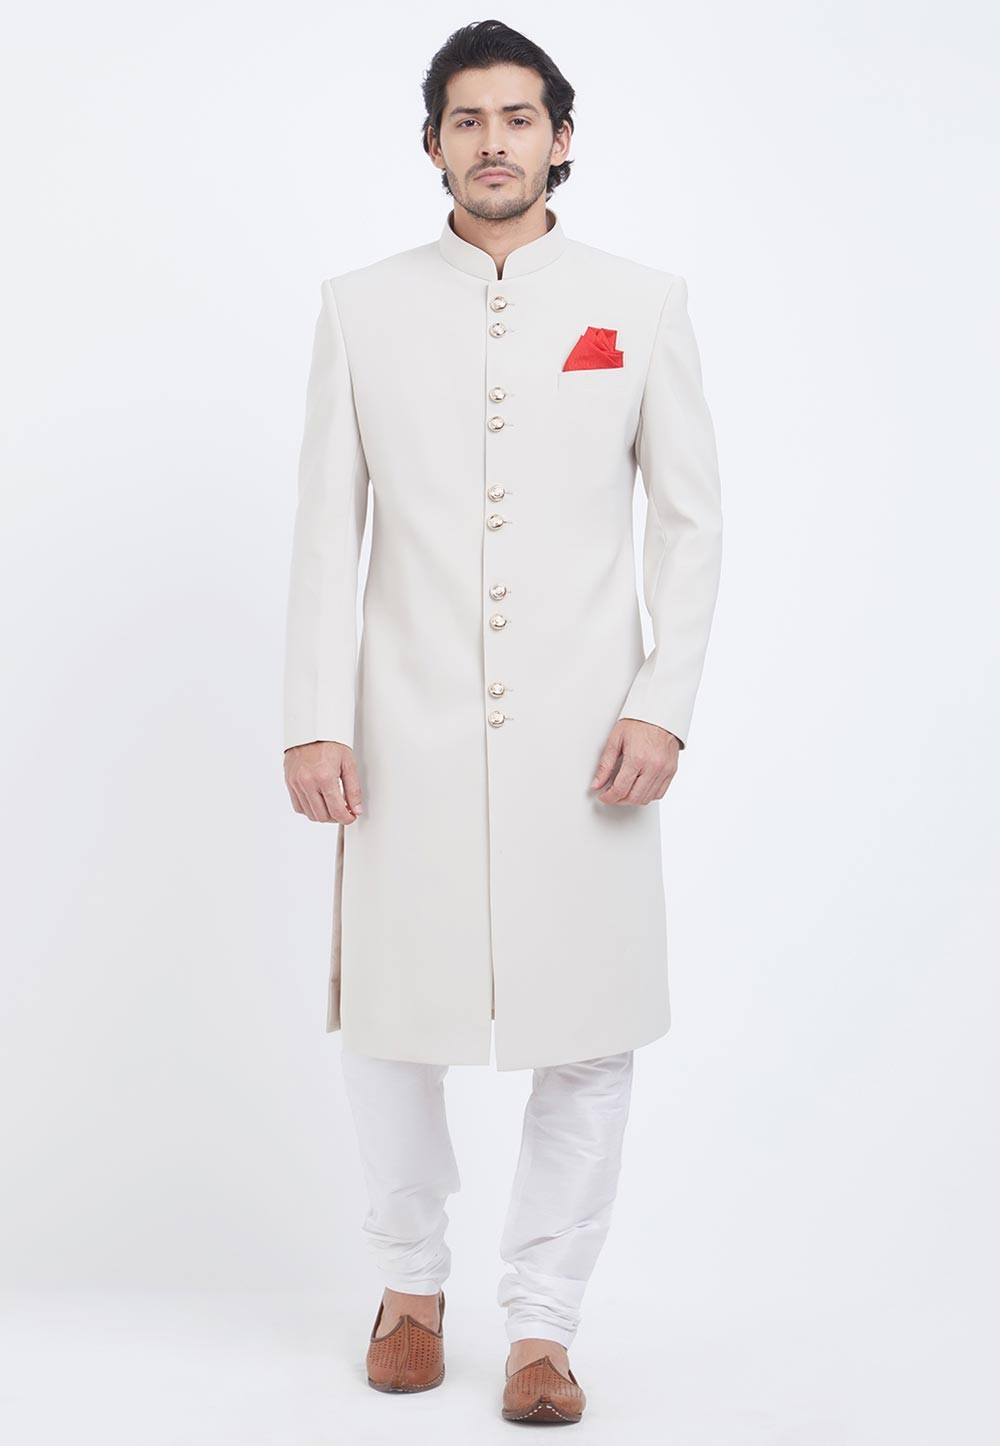 Off White Men's Sherwani.